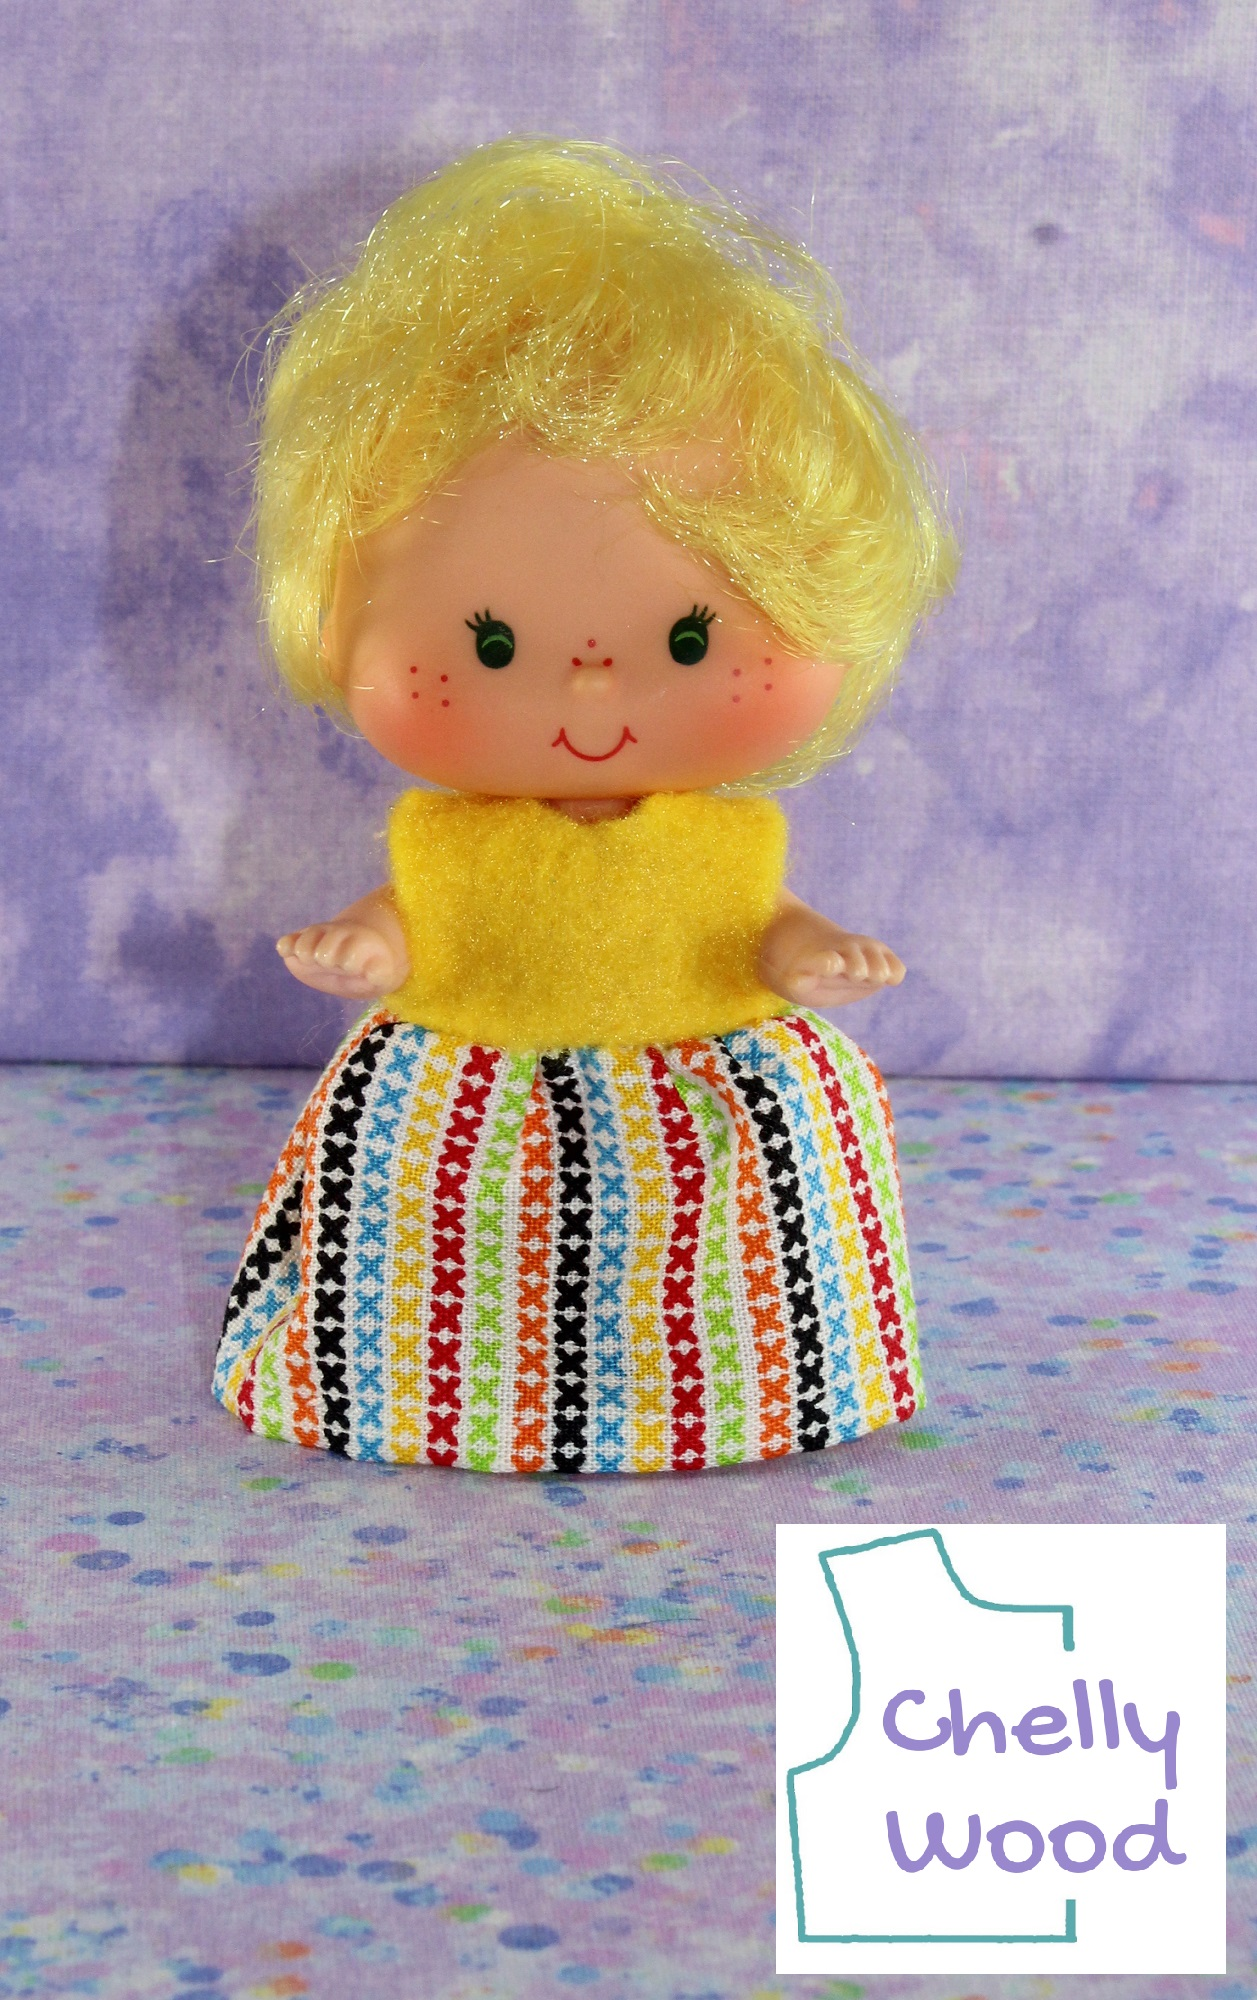 The image shows a Strawberry Shortcake toddler doll (Lemon Meringue) wearing a handmade dress. Free doll clothes patterns for making this dress are found at ChellyWood.com